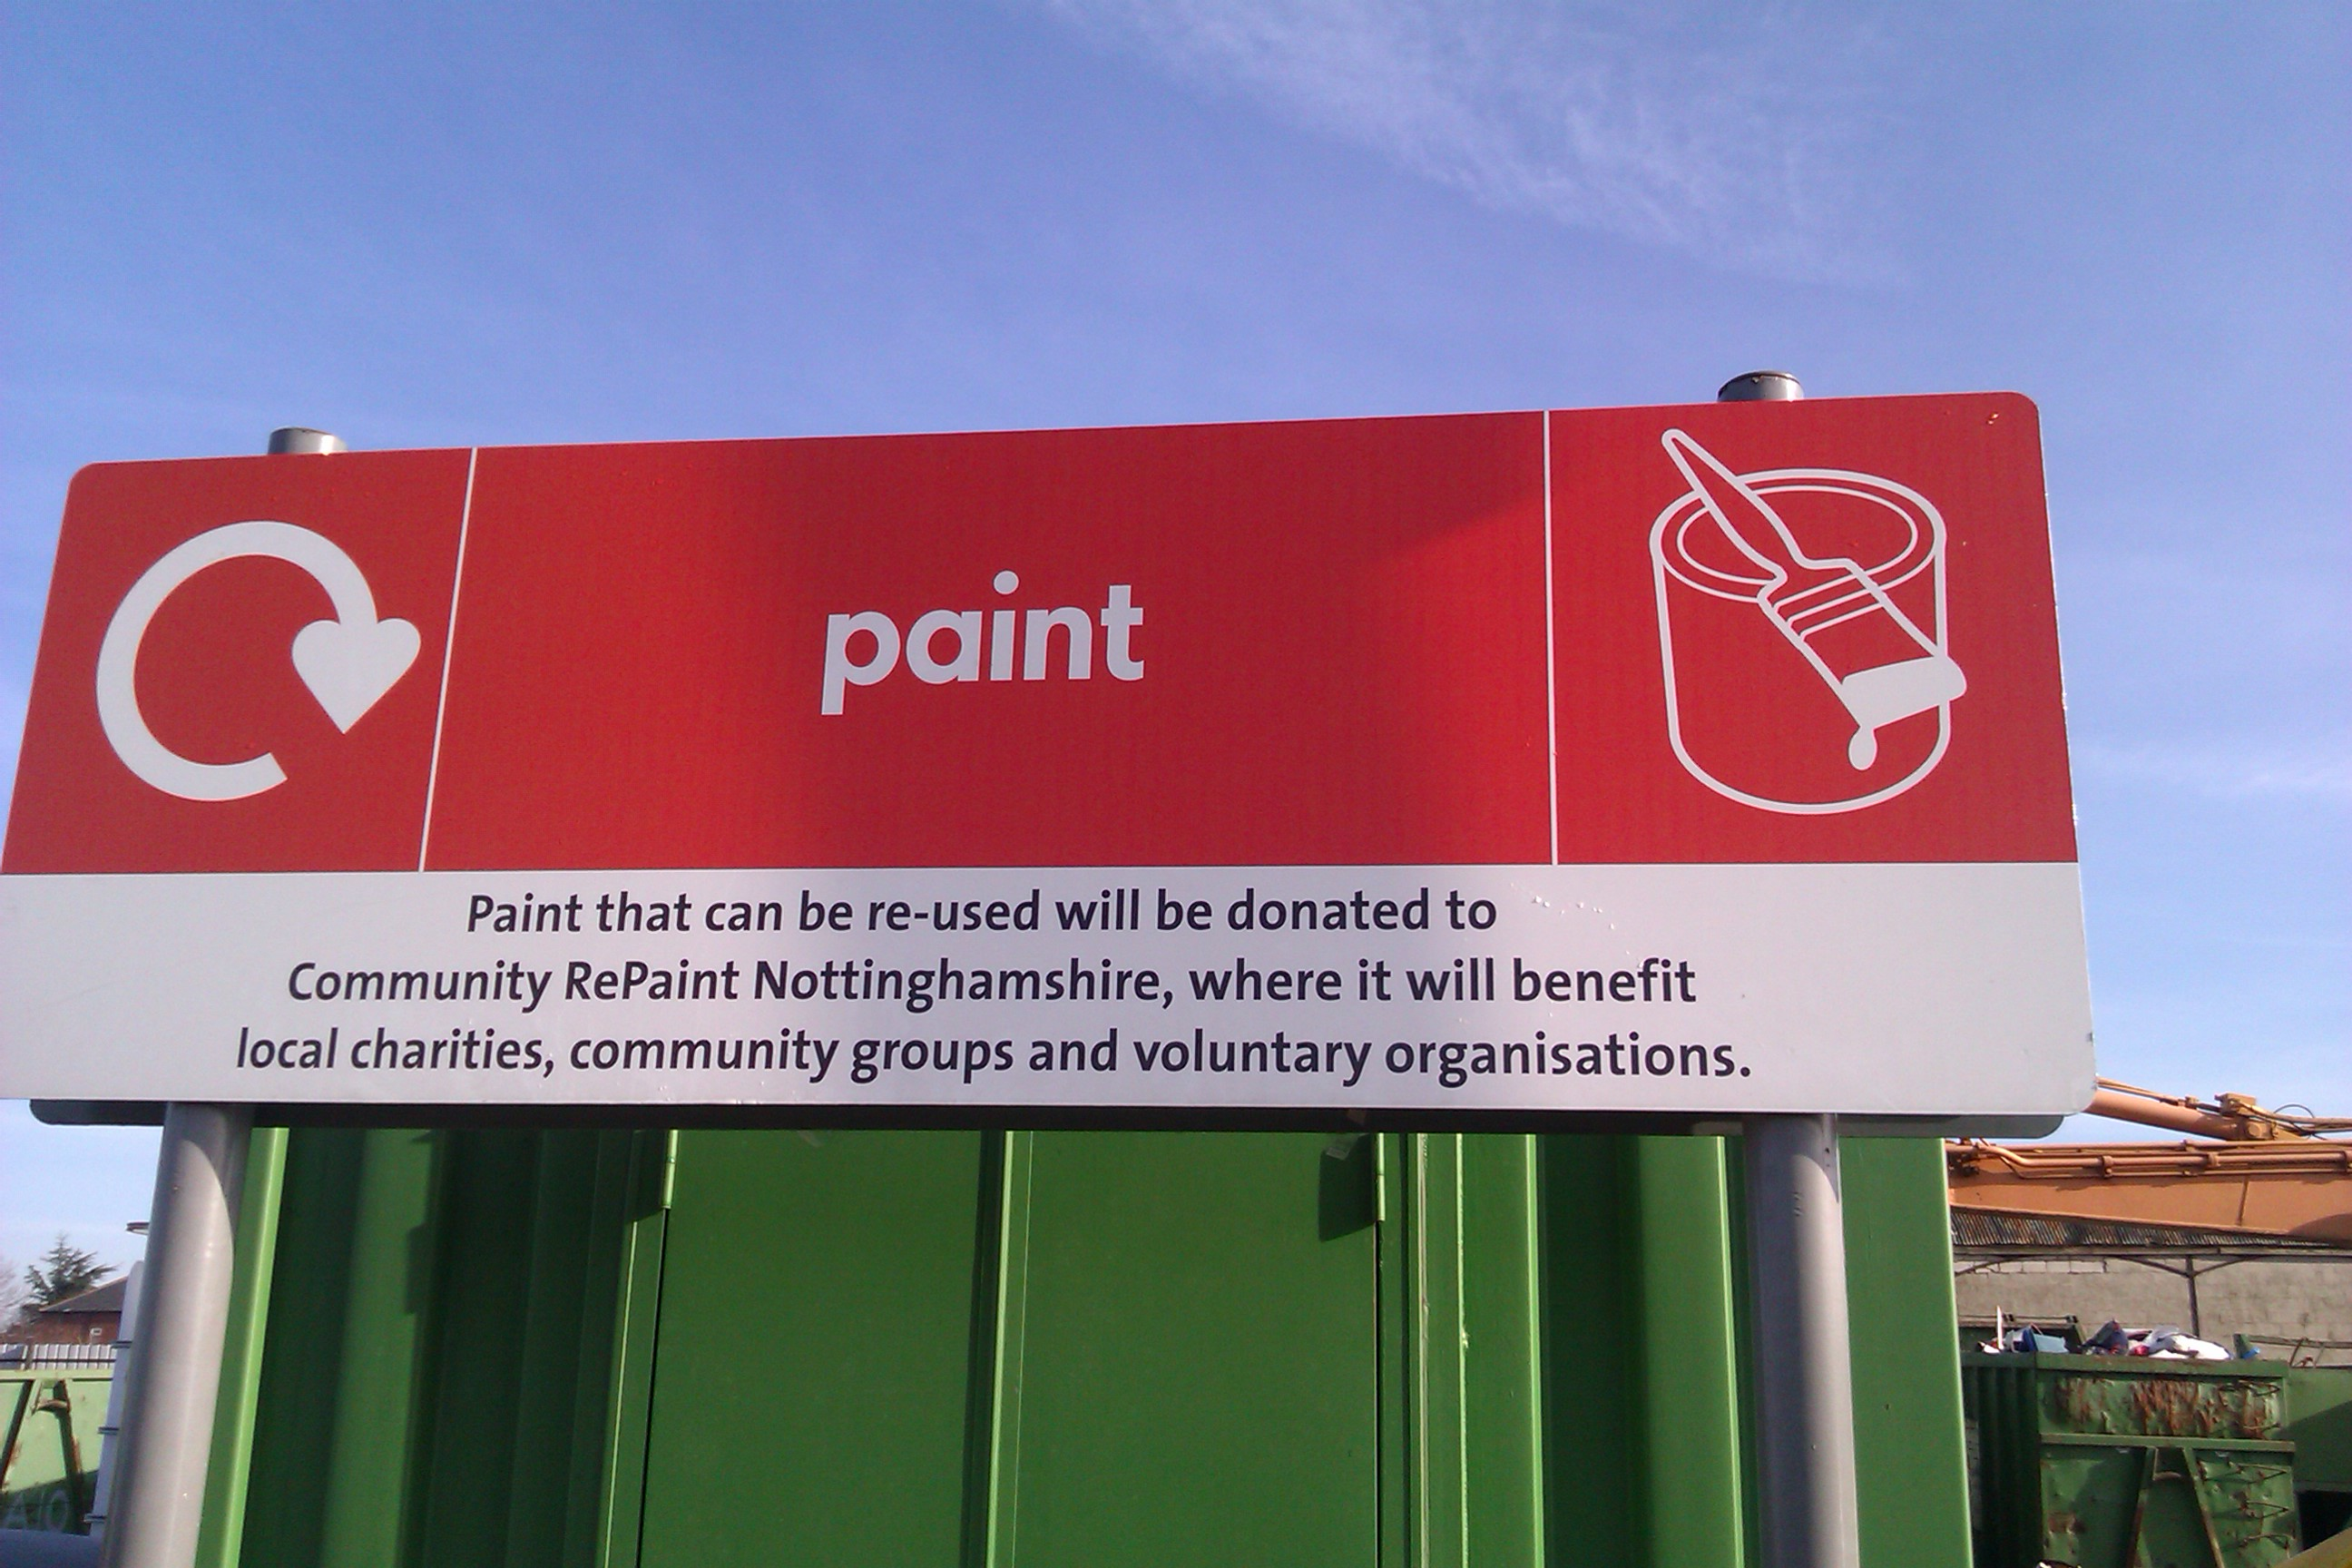 Paint donation sign at Nottinghamshire County Council that reads: Paint that can be re-used will be donated to Community RePaint Nottinghamshire, where it will benefit local charities, community groups and voluntary organisations.